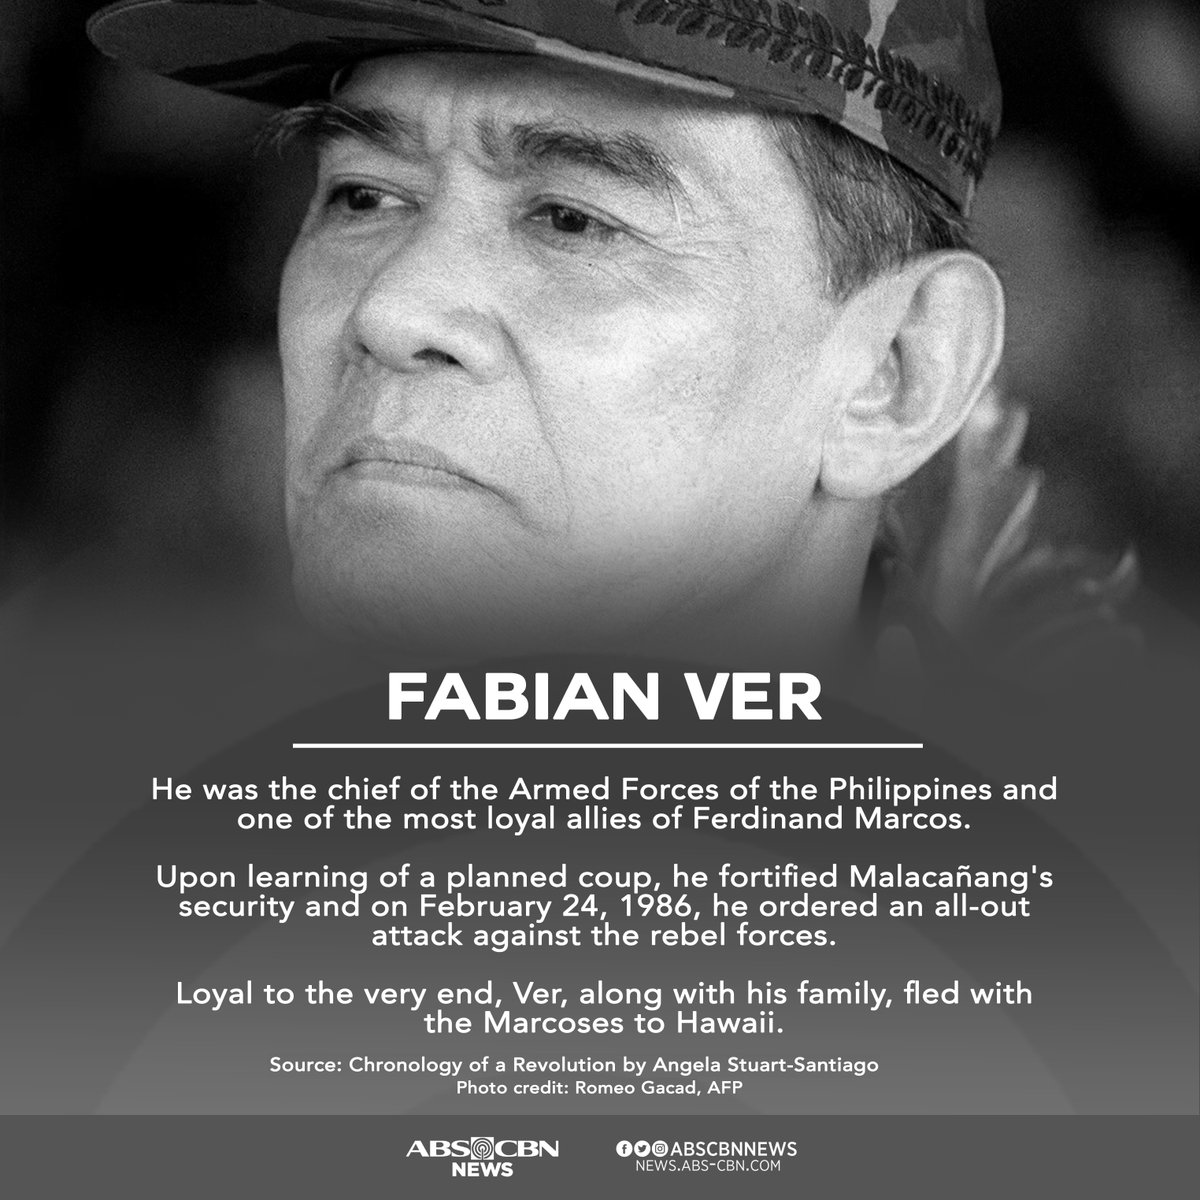 EDSA Key Players: Even after the fall of the dictatorship, Ver remained loyal to his commander-in-chief, flying to Hawaii with the Marcoses. #EDSA32  More here: https://t.co/0pF3CfkoVG